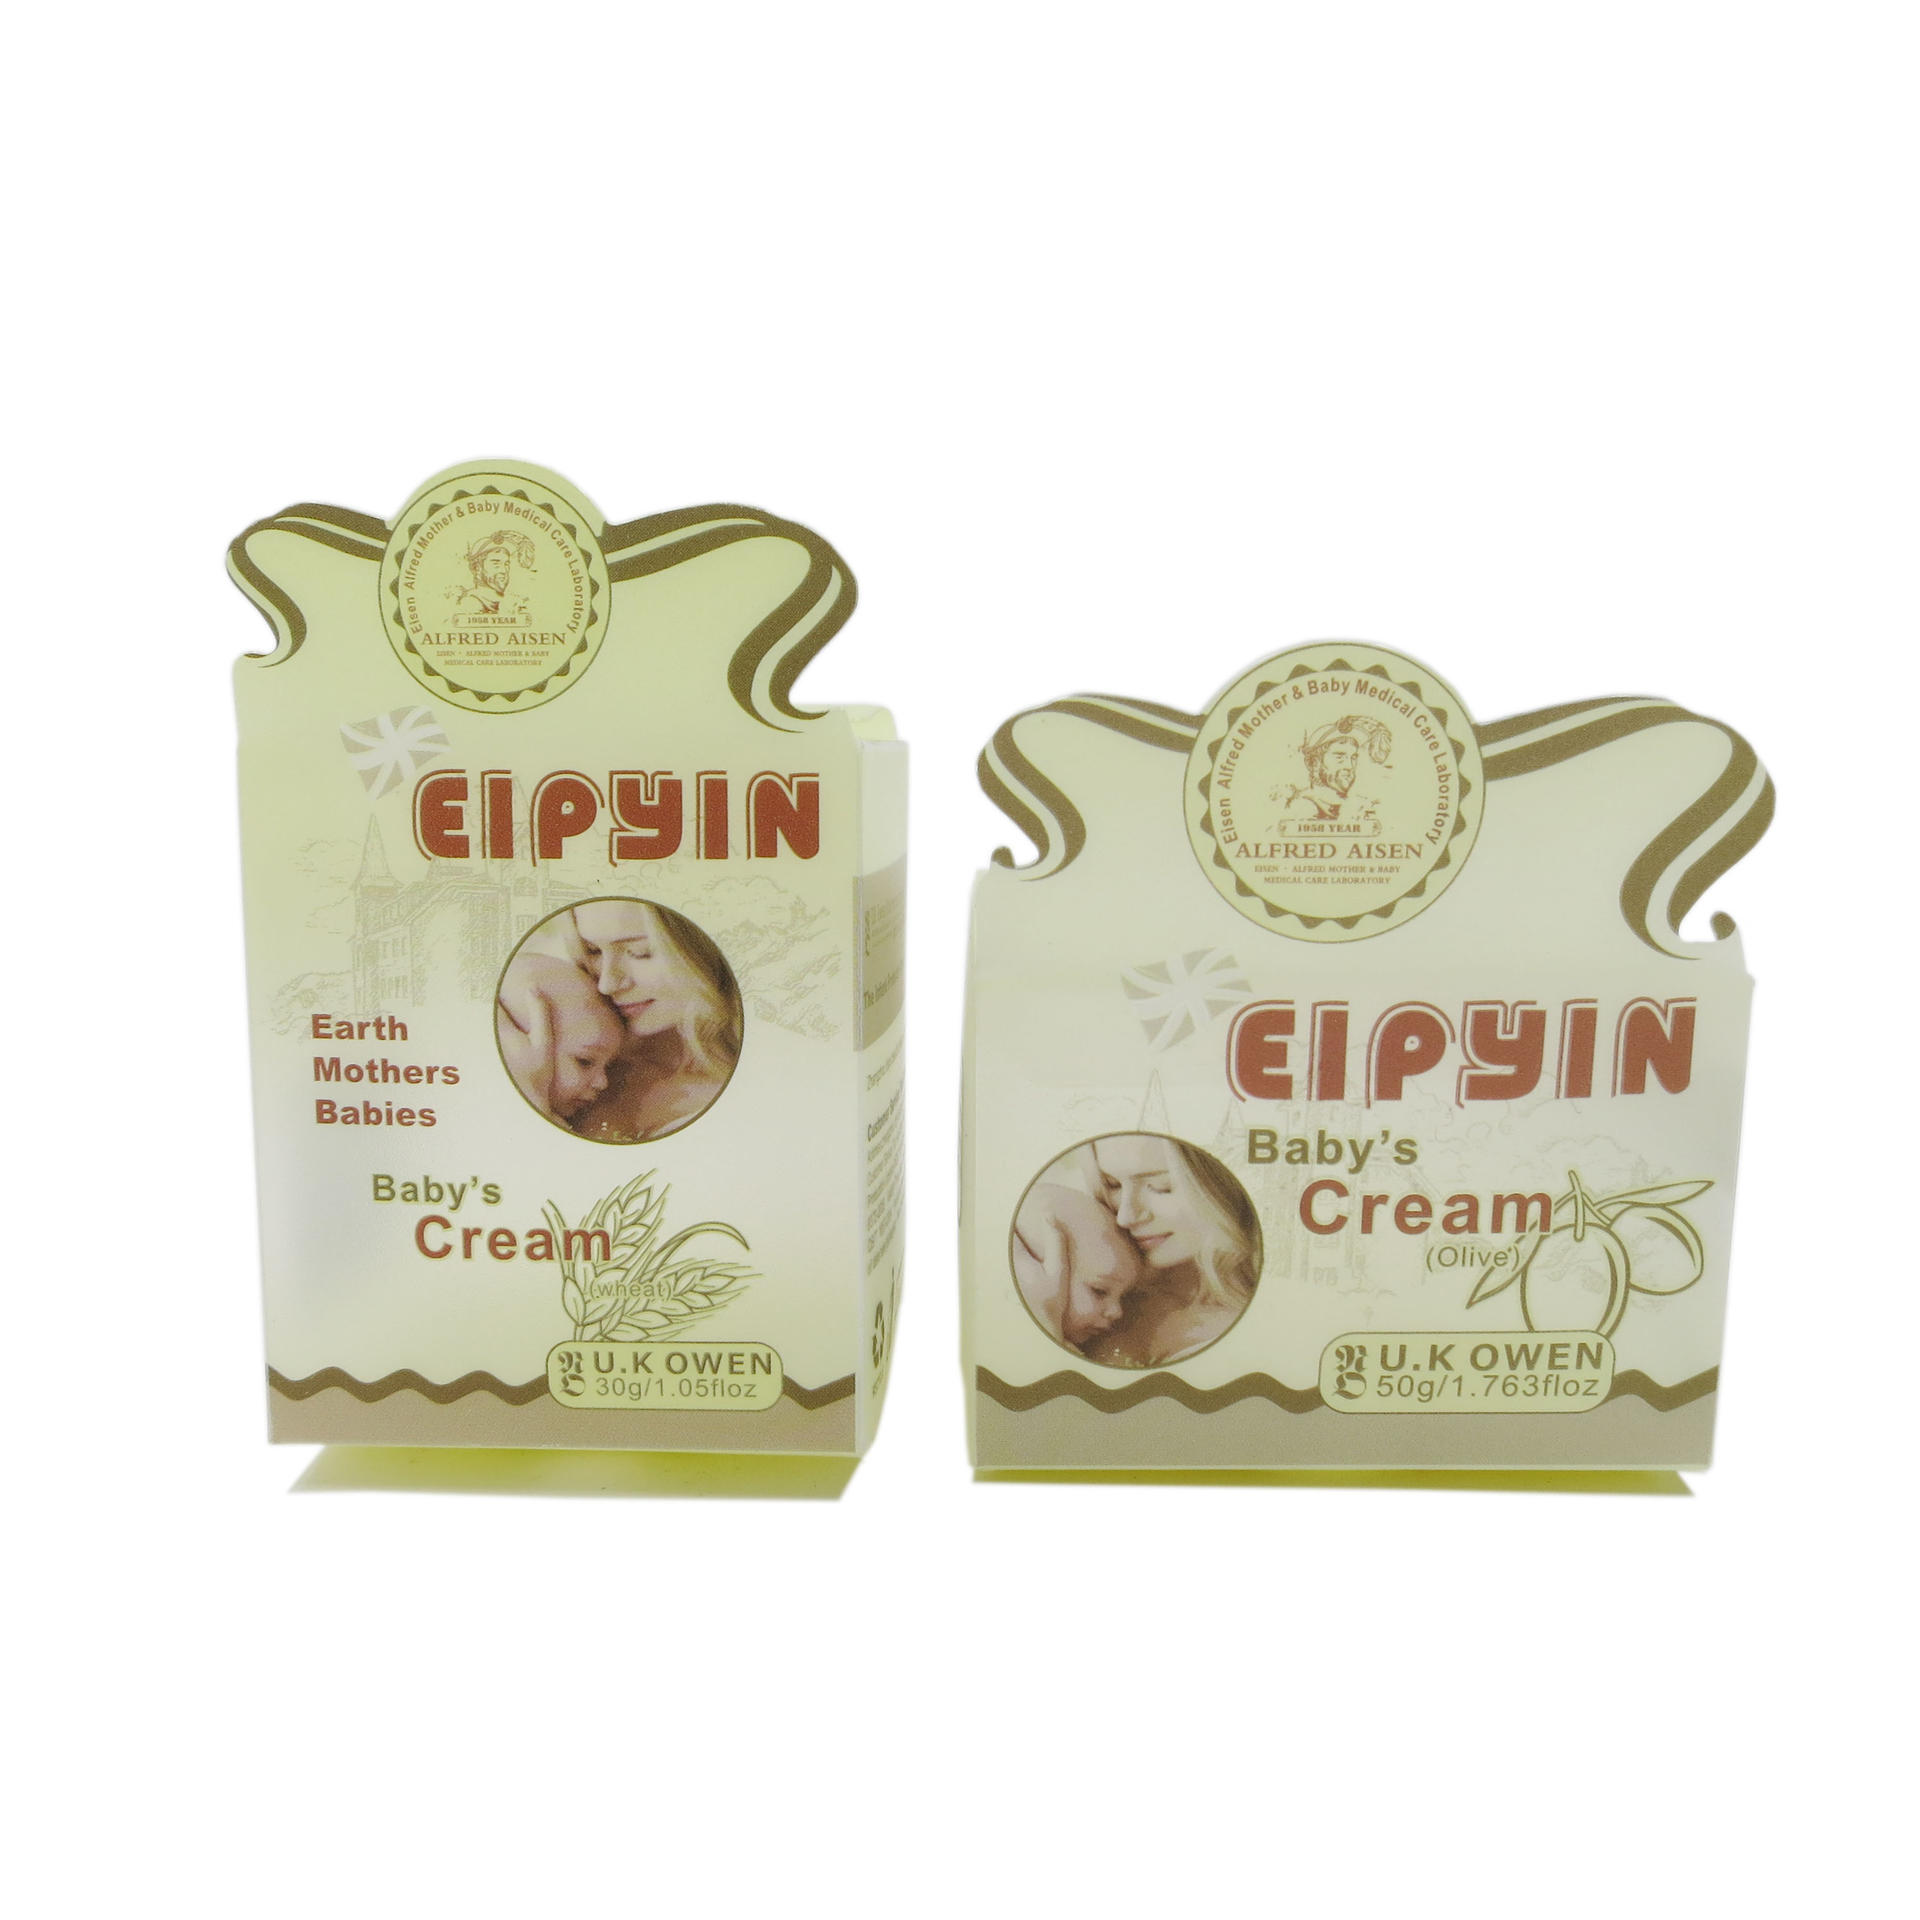 Custom Skin Care Packaging with Exterior AD Panel